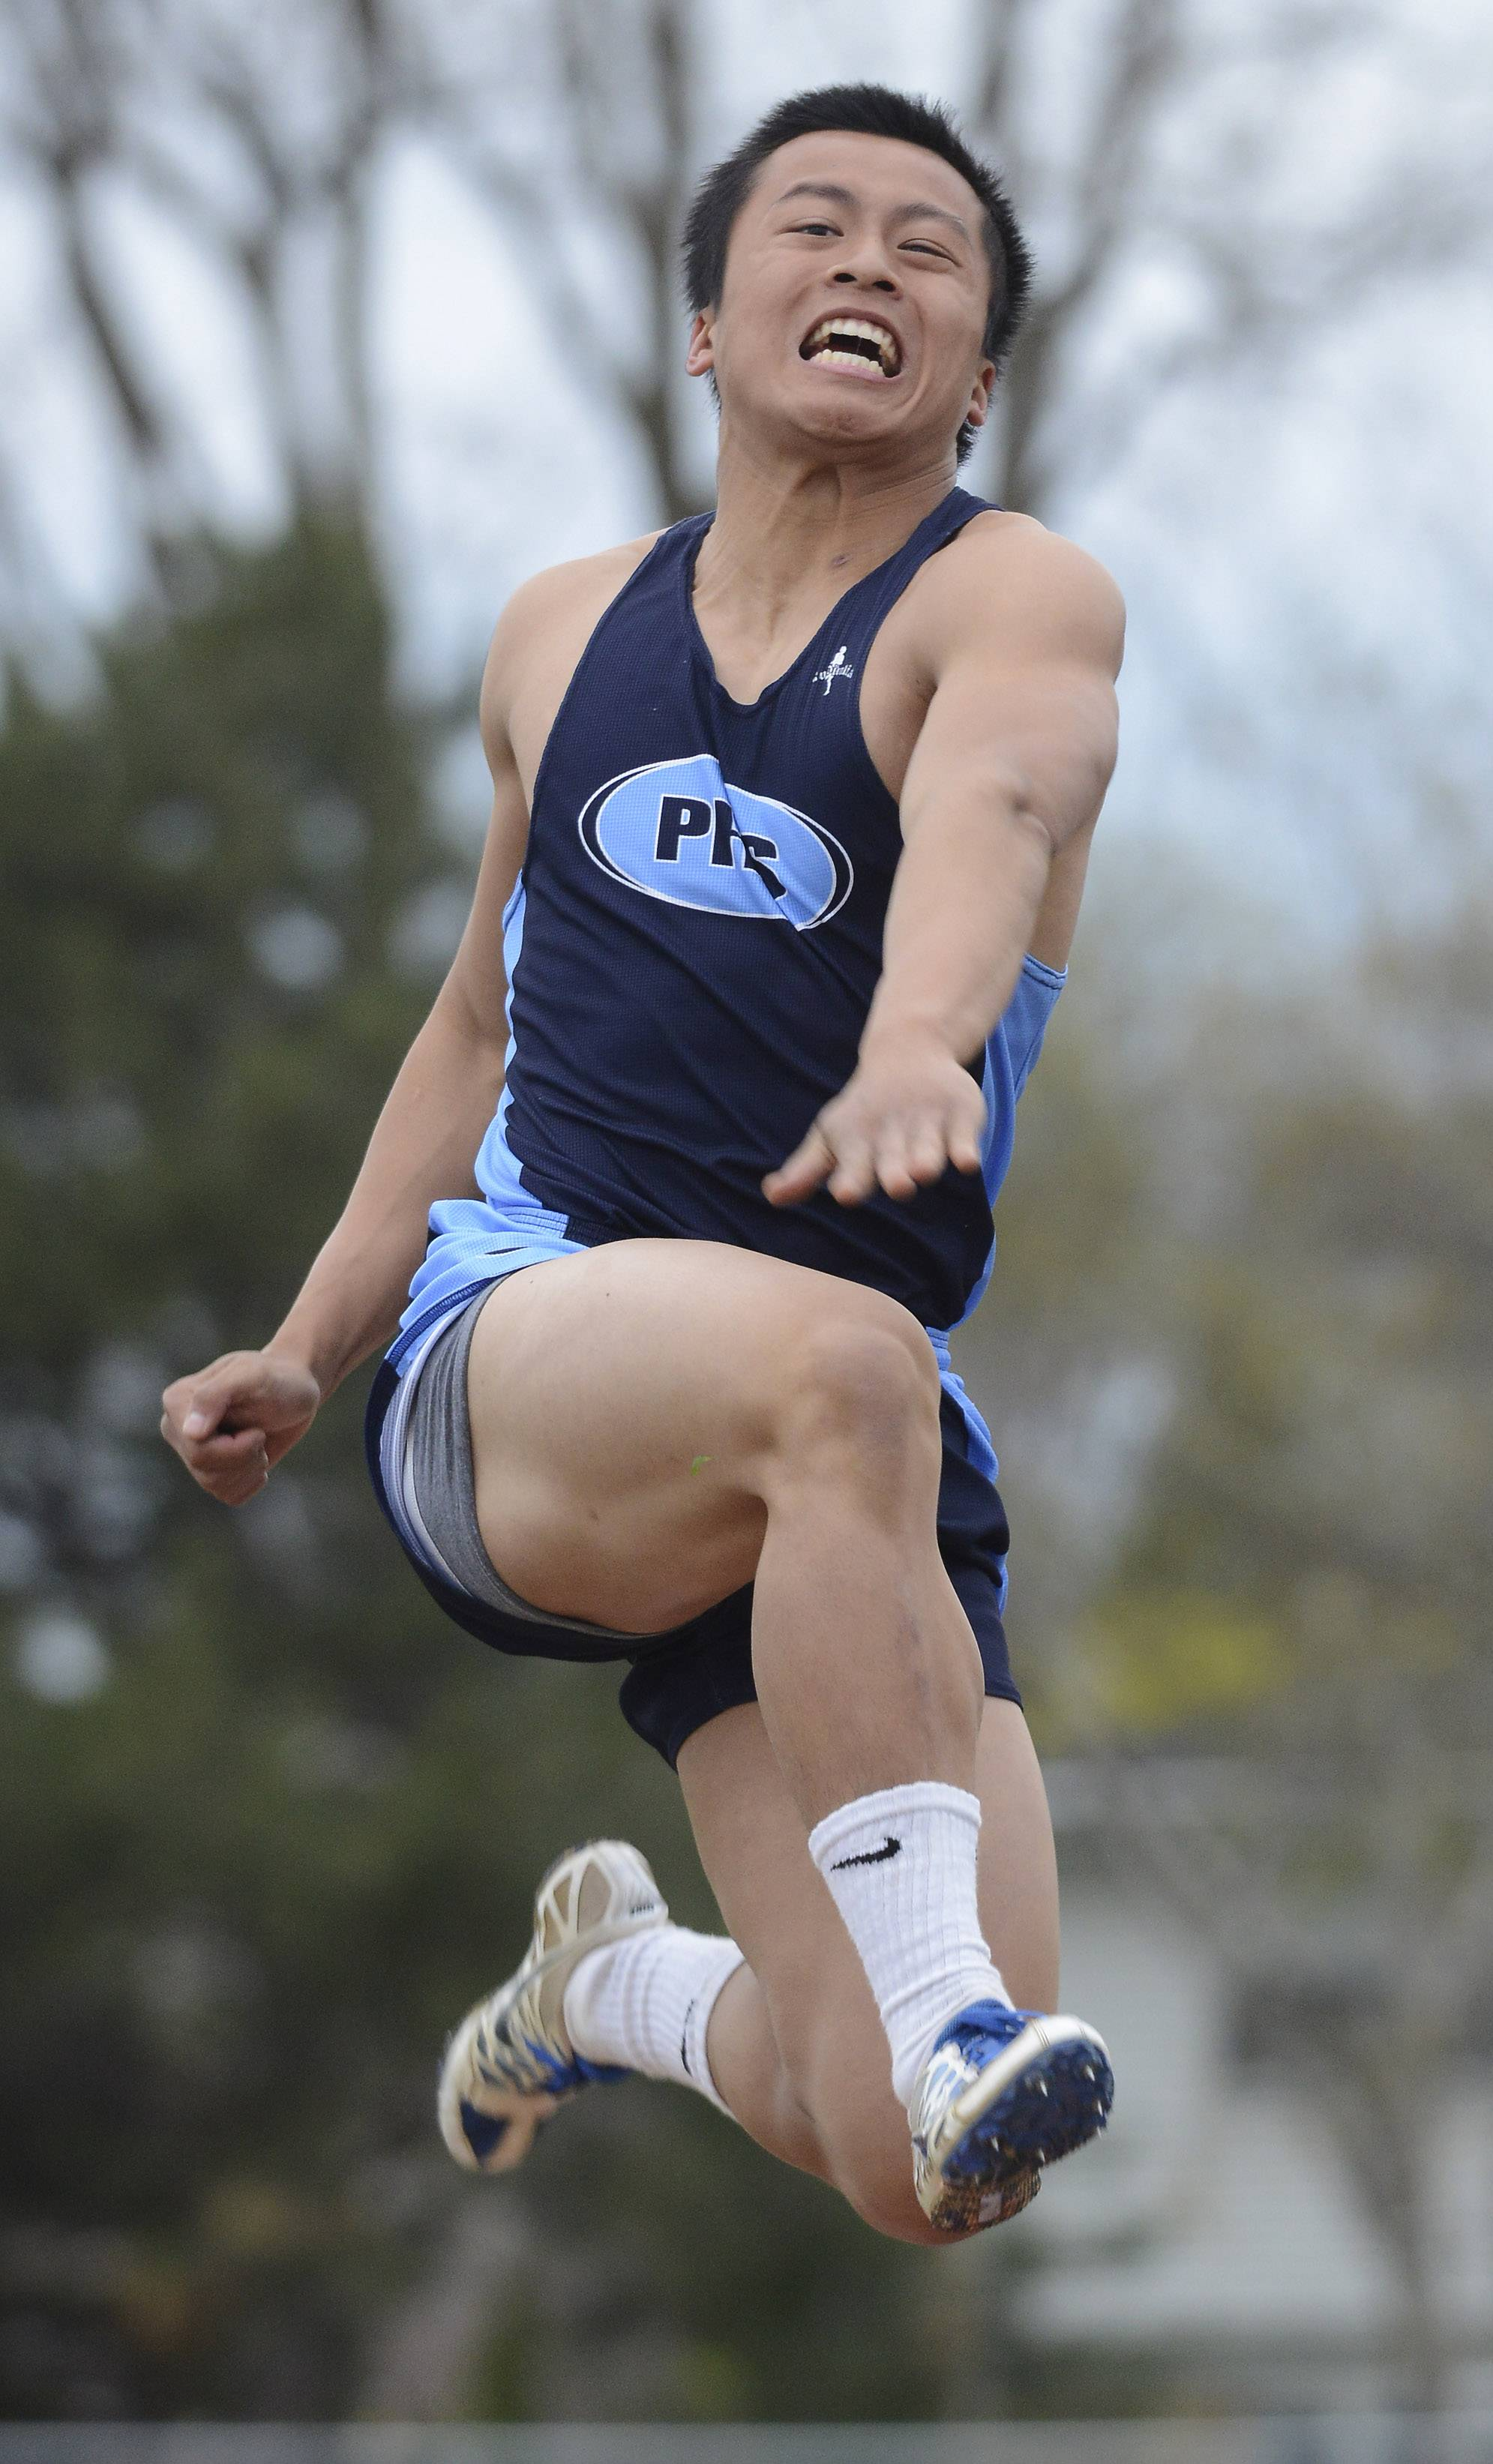 Prospect's Vinny Lai competes in the long jump during the Wanner Invitational.